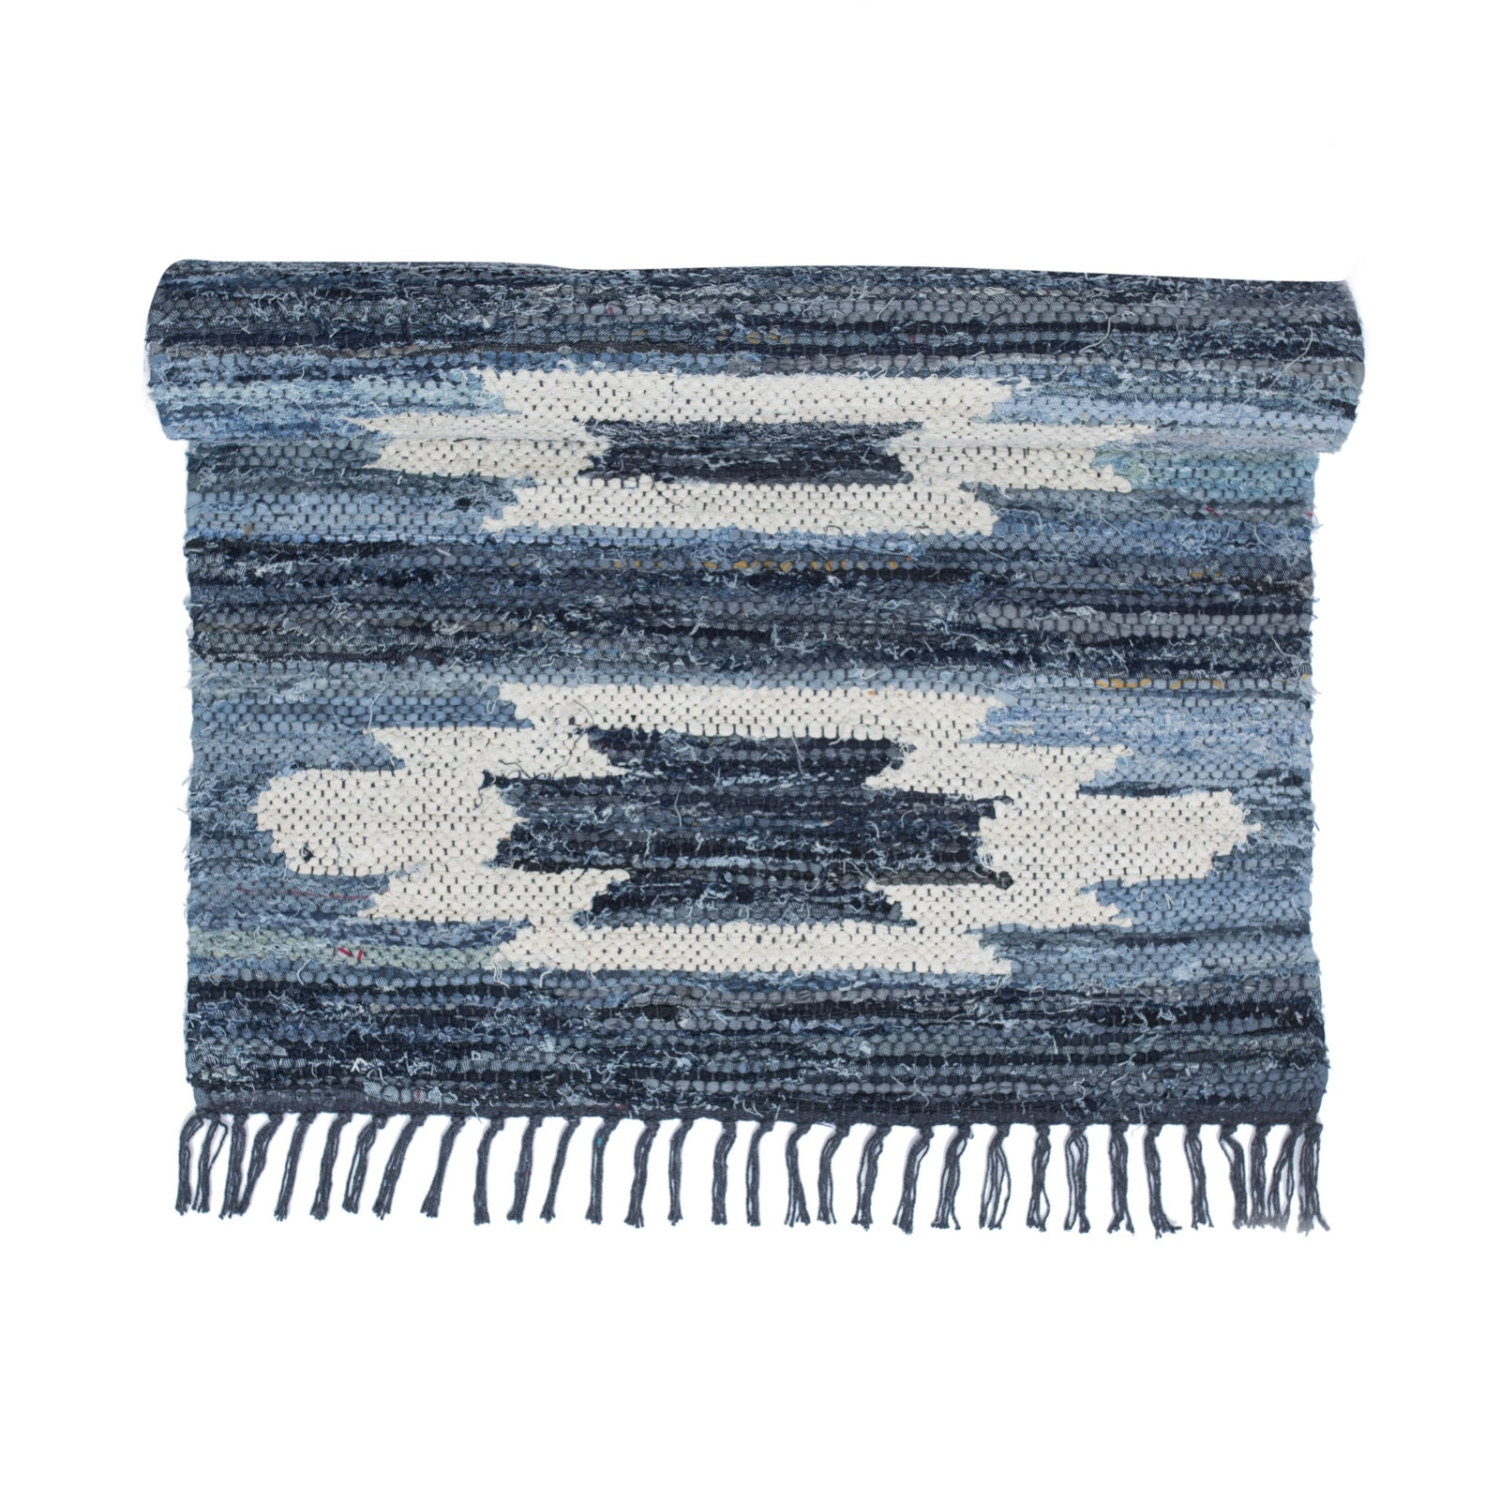 Blue And White Scandinavian Rug: Kilim Style Blue & White Swedish Rag Rug